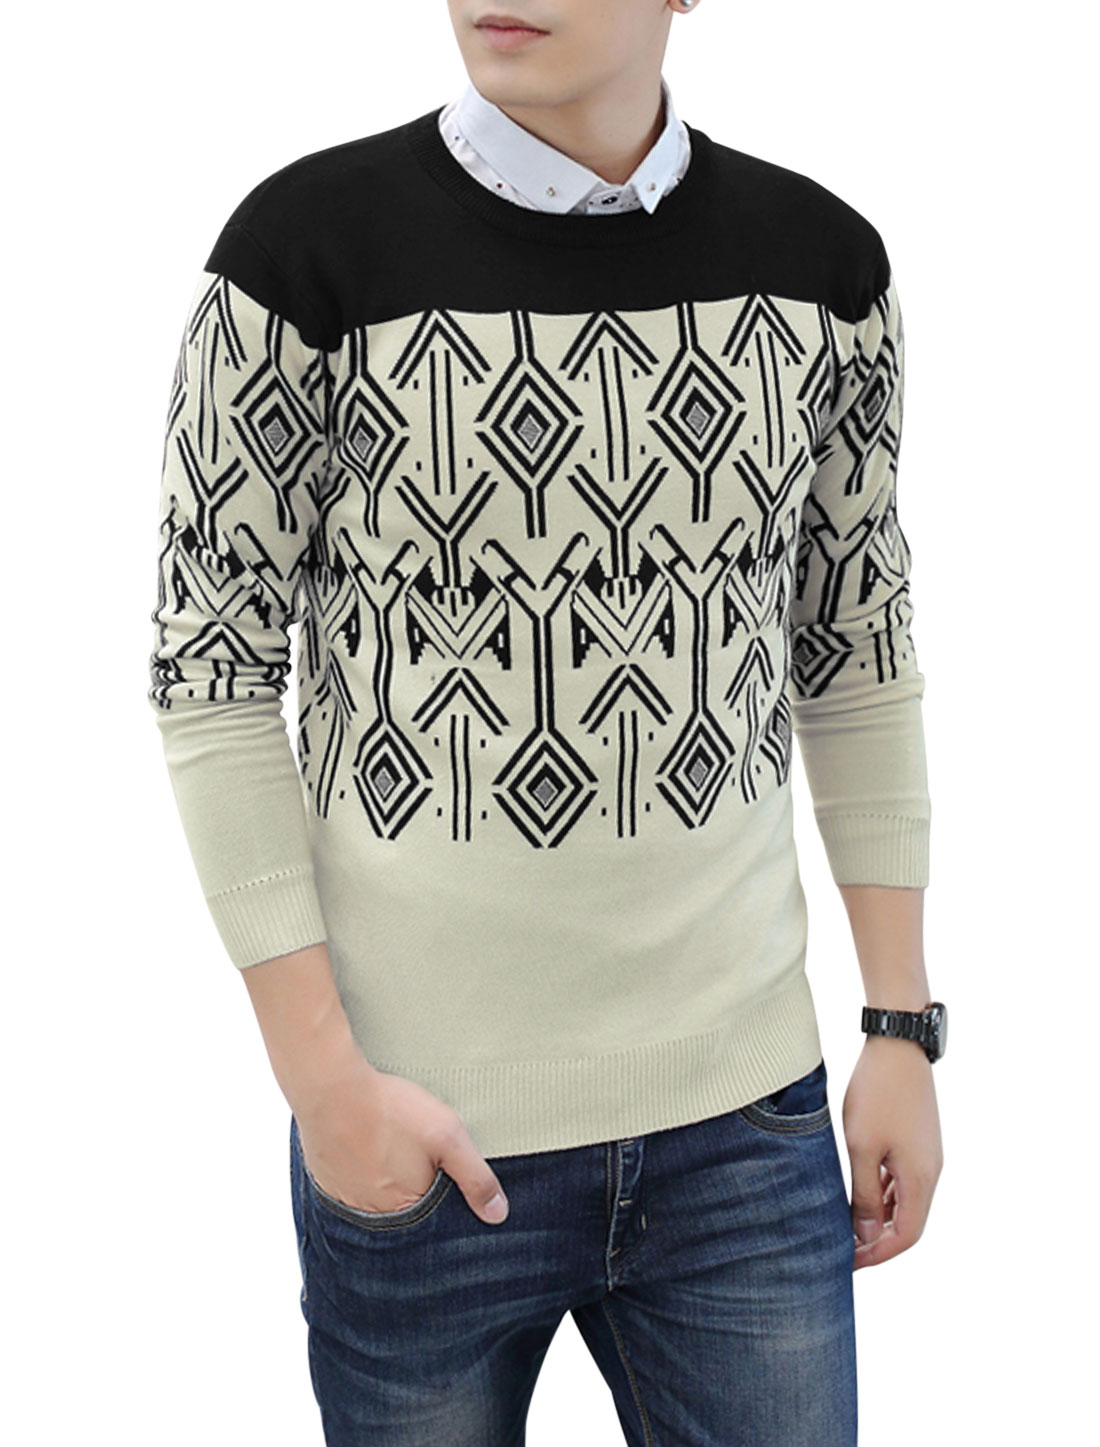 Men Round Neck Color Blocked Slipover Leisure Knitted Top Black Beige M